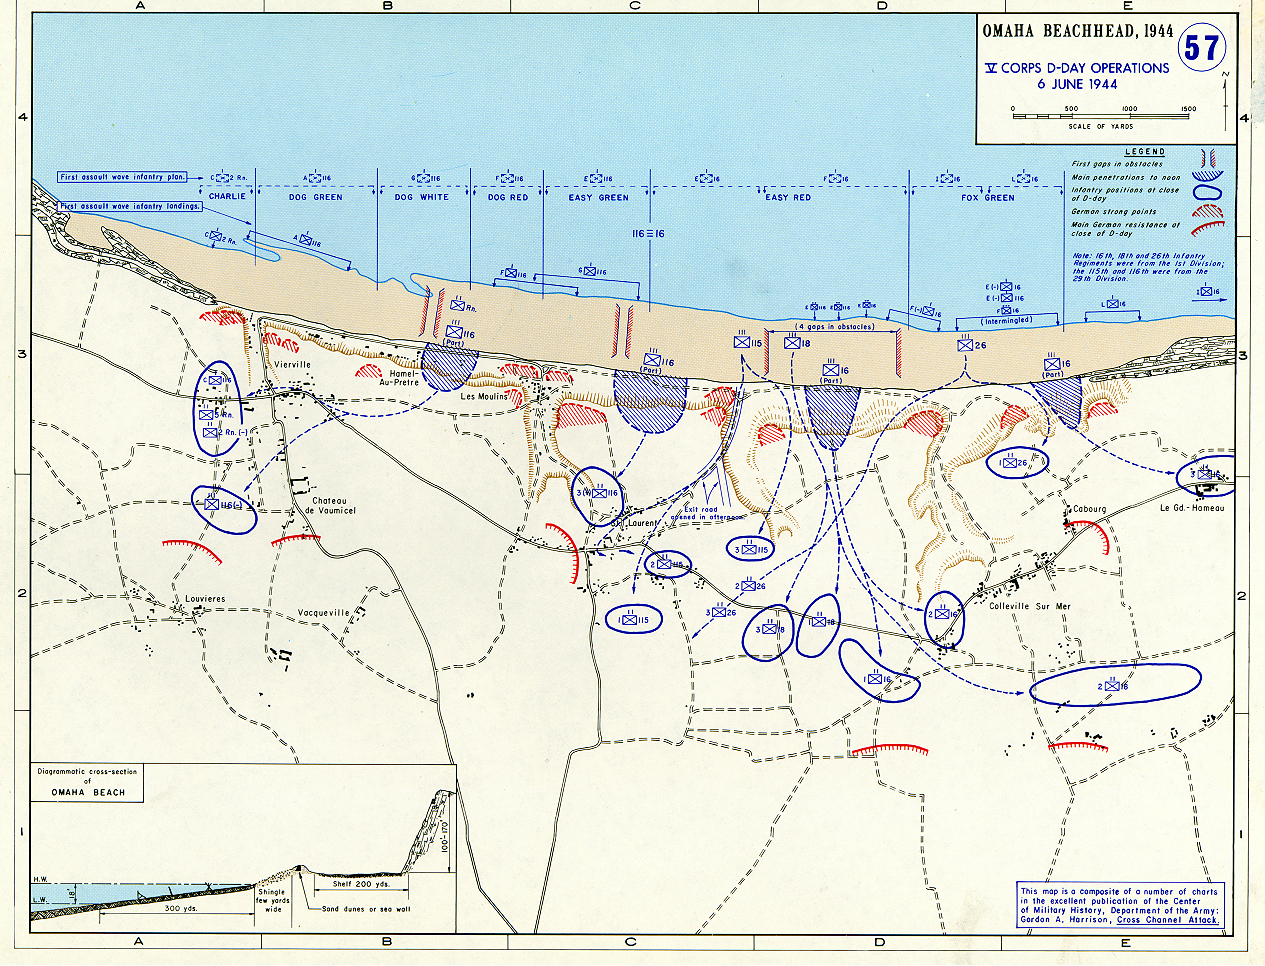 omaha beachhead v corps d day operations geography famous historical events visual arts world